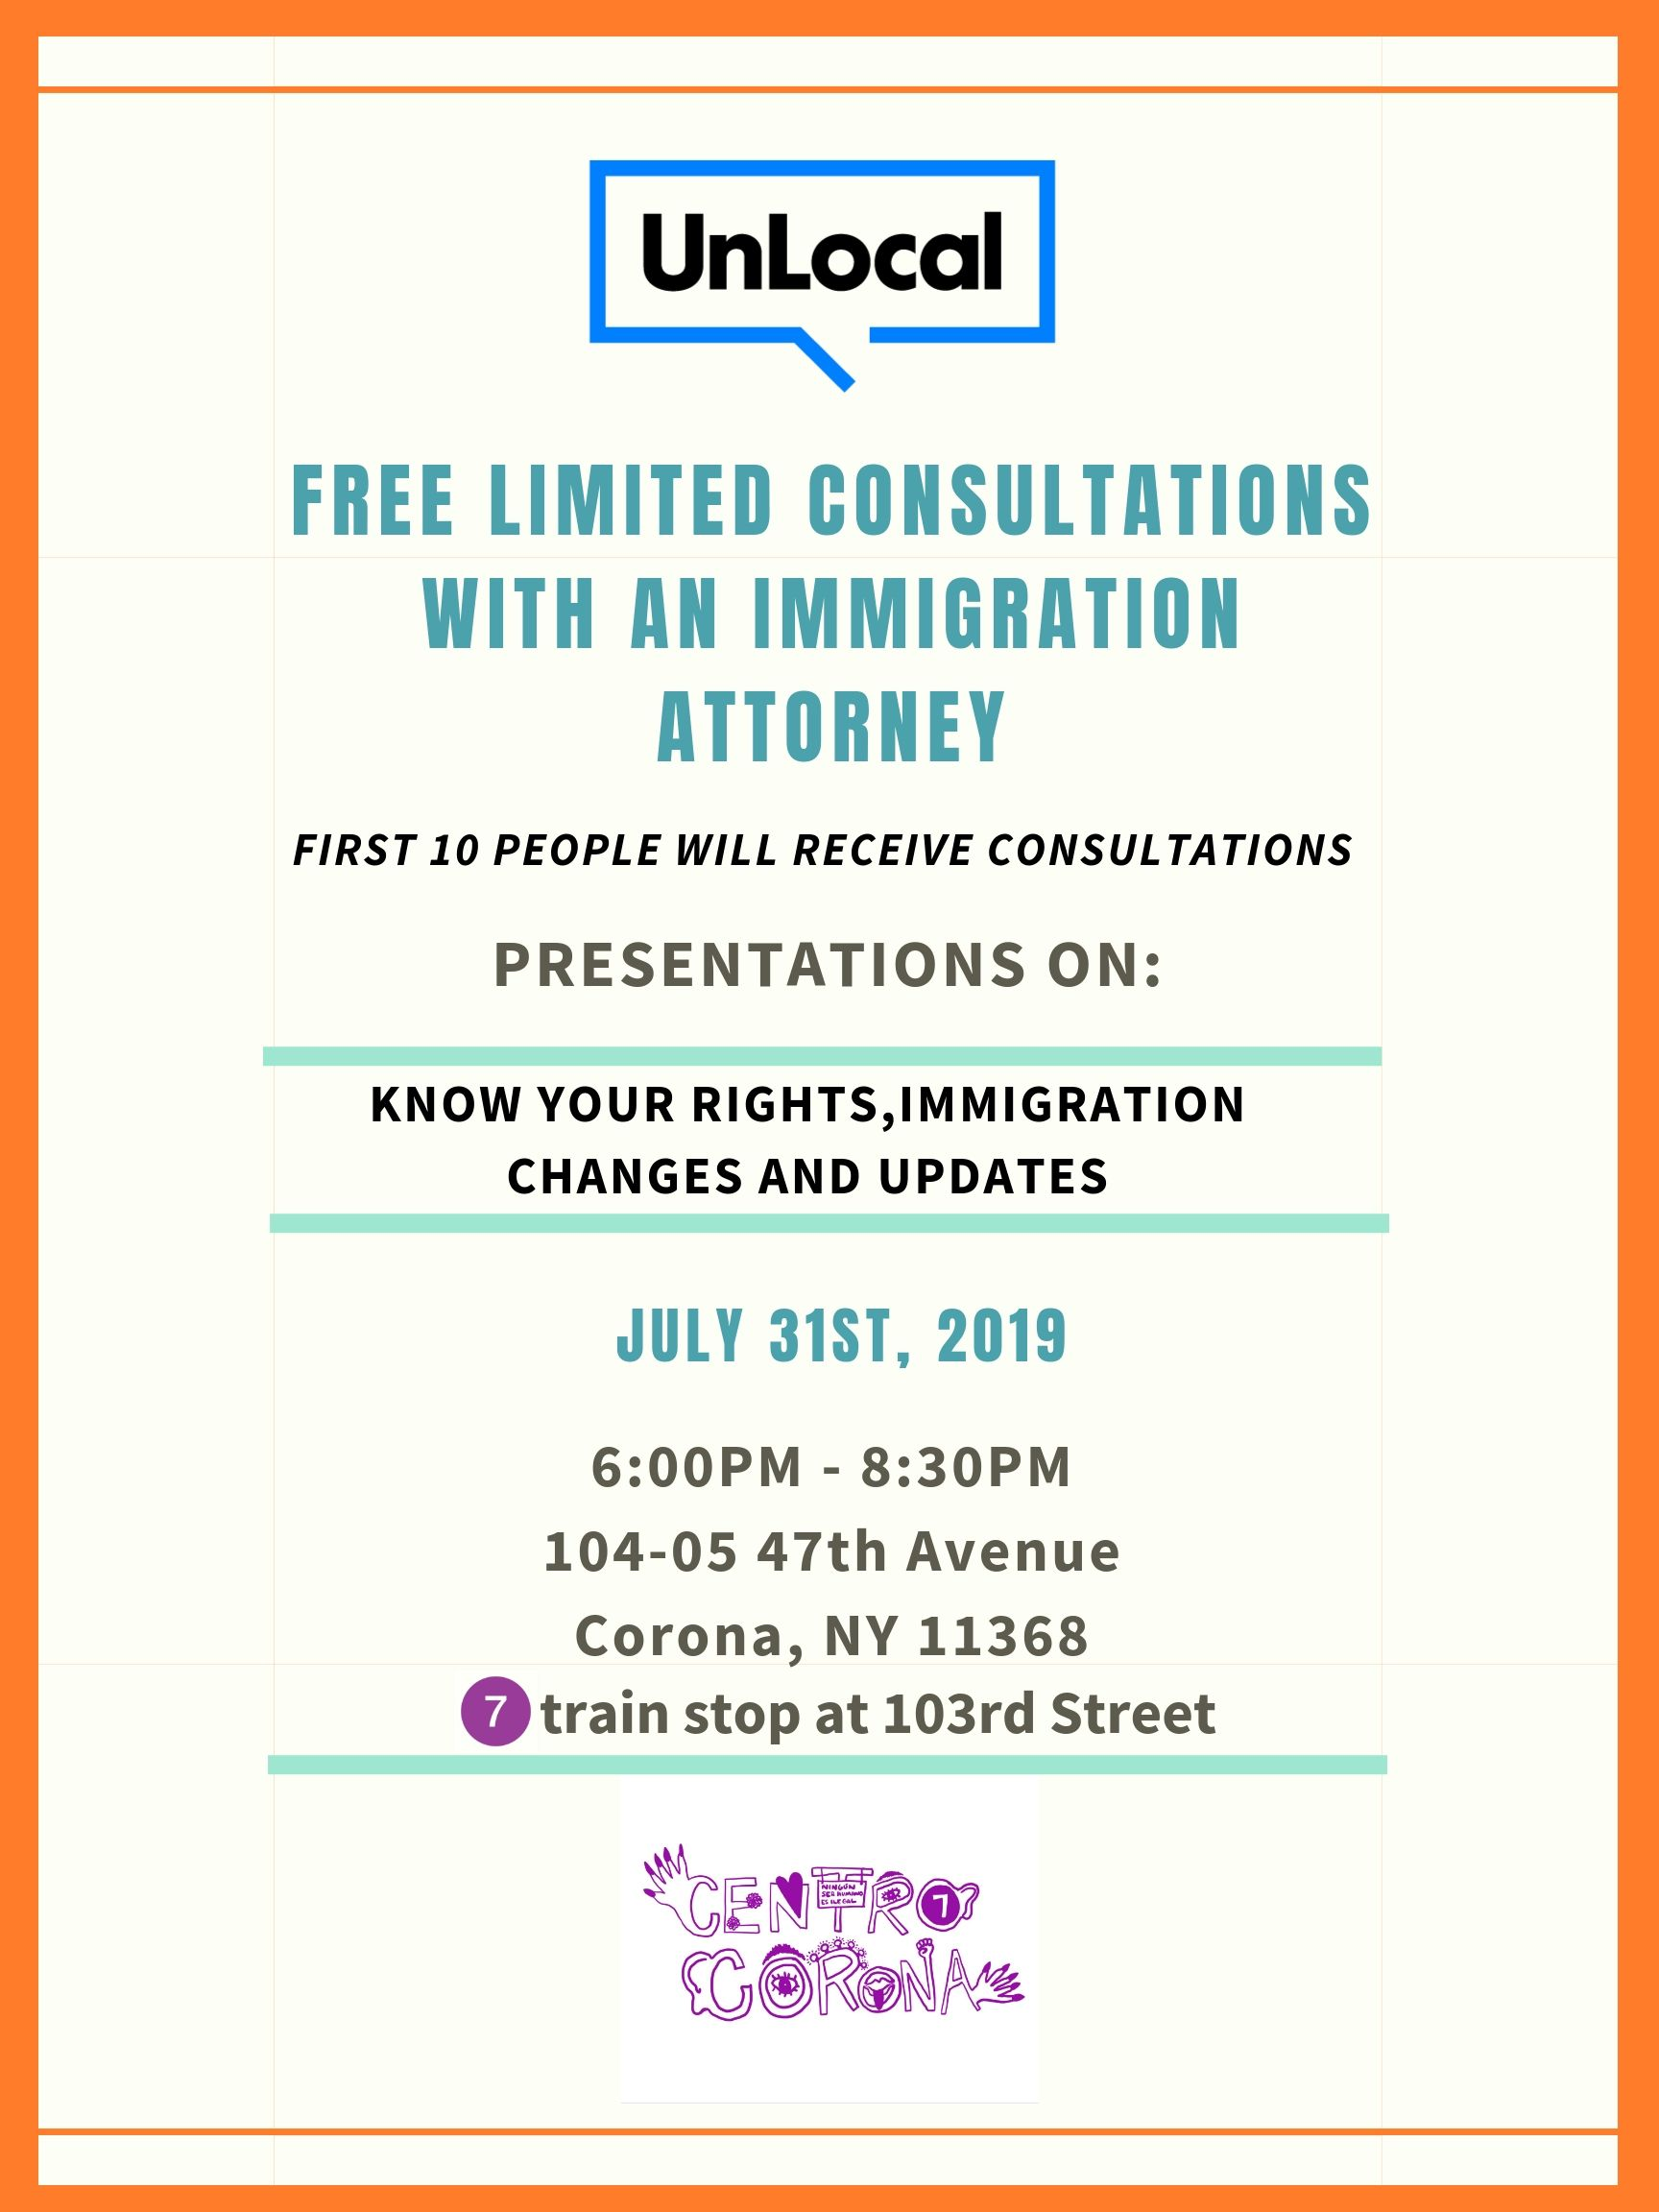 Monthly Free Legal Consultations at Centro Corona